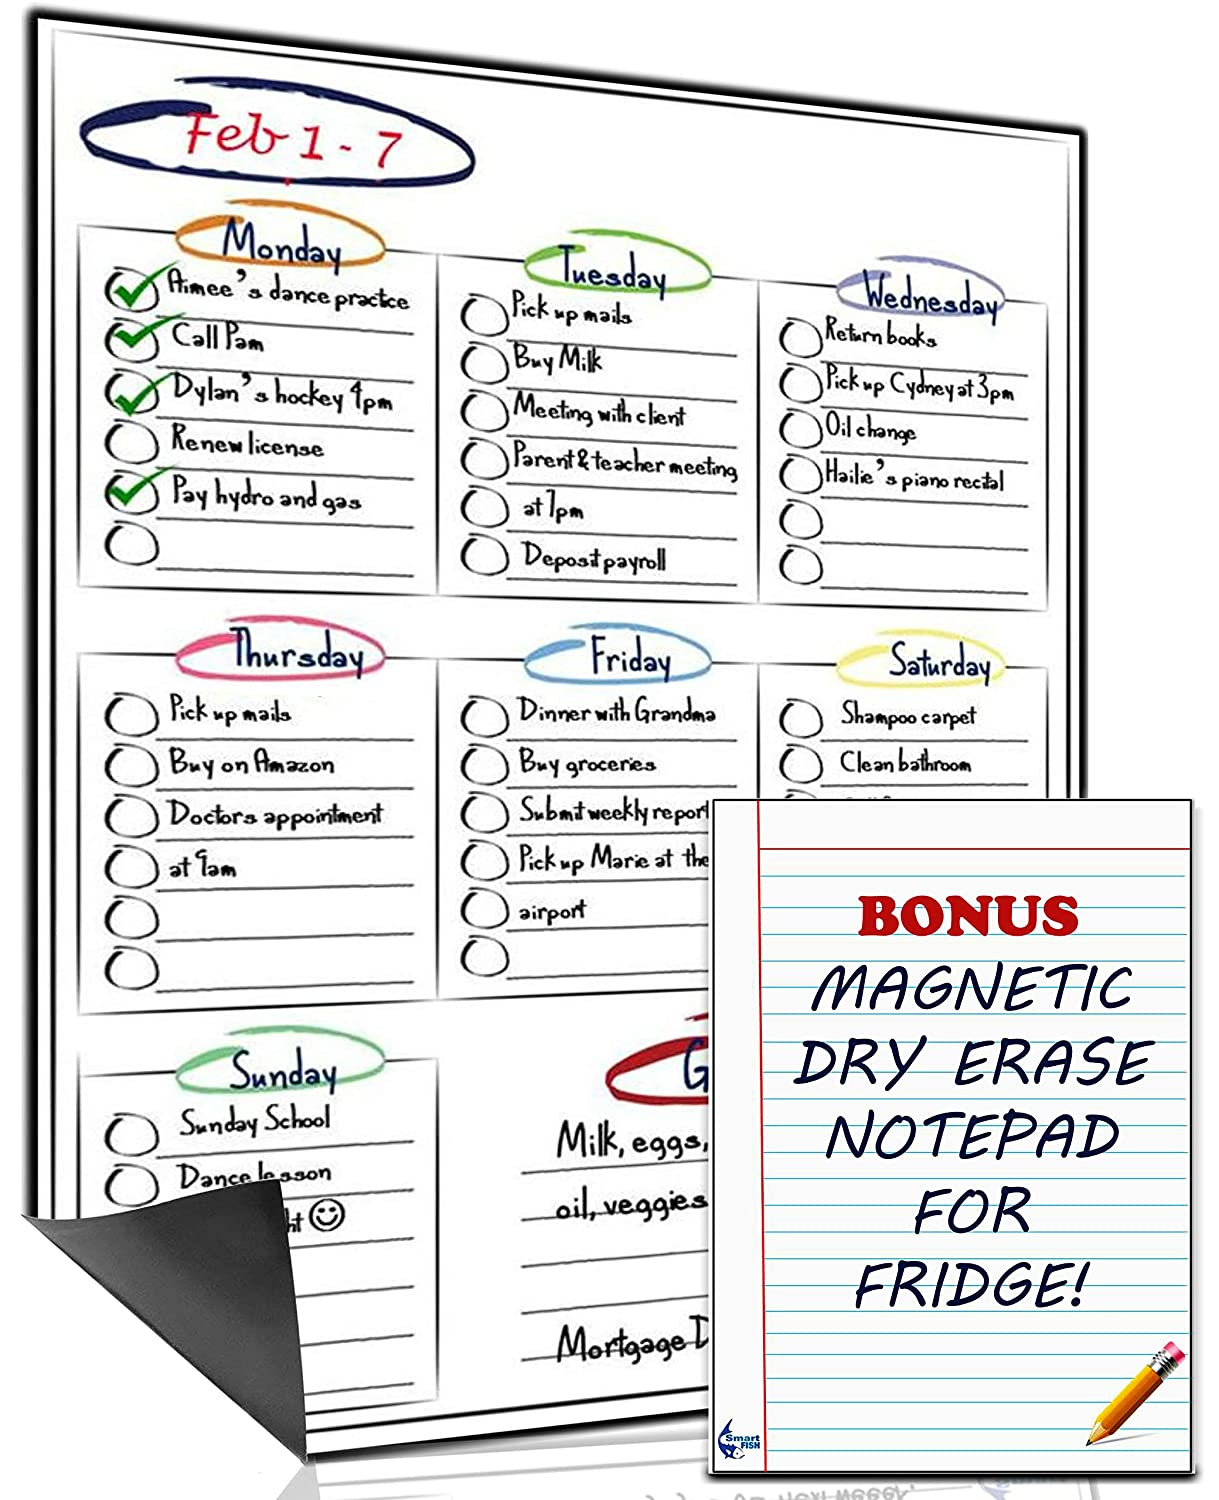 Multi-Purpose Daily & Weekly Magnetic Dry Erase Whiteboard for fridge – by Smart Fish with **BONUS** Dry Erase Magnetic Notepad. For your to do list, chore chart, reminders and menu planner board (12 x 16 inches)